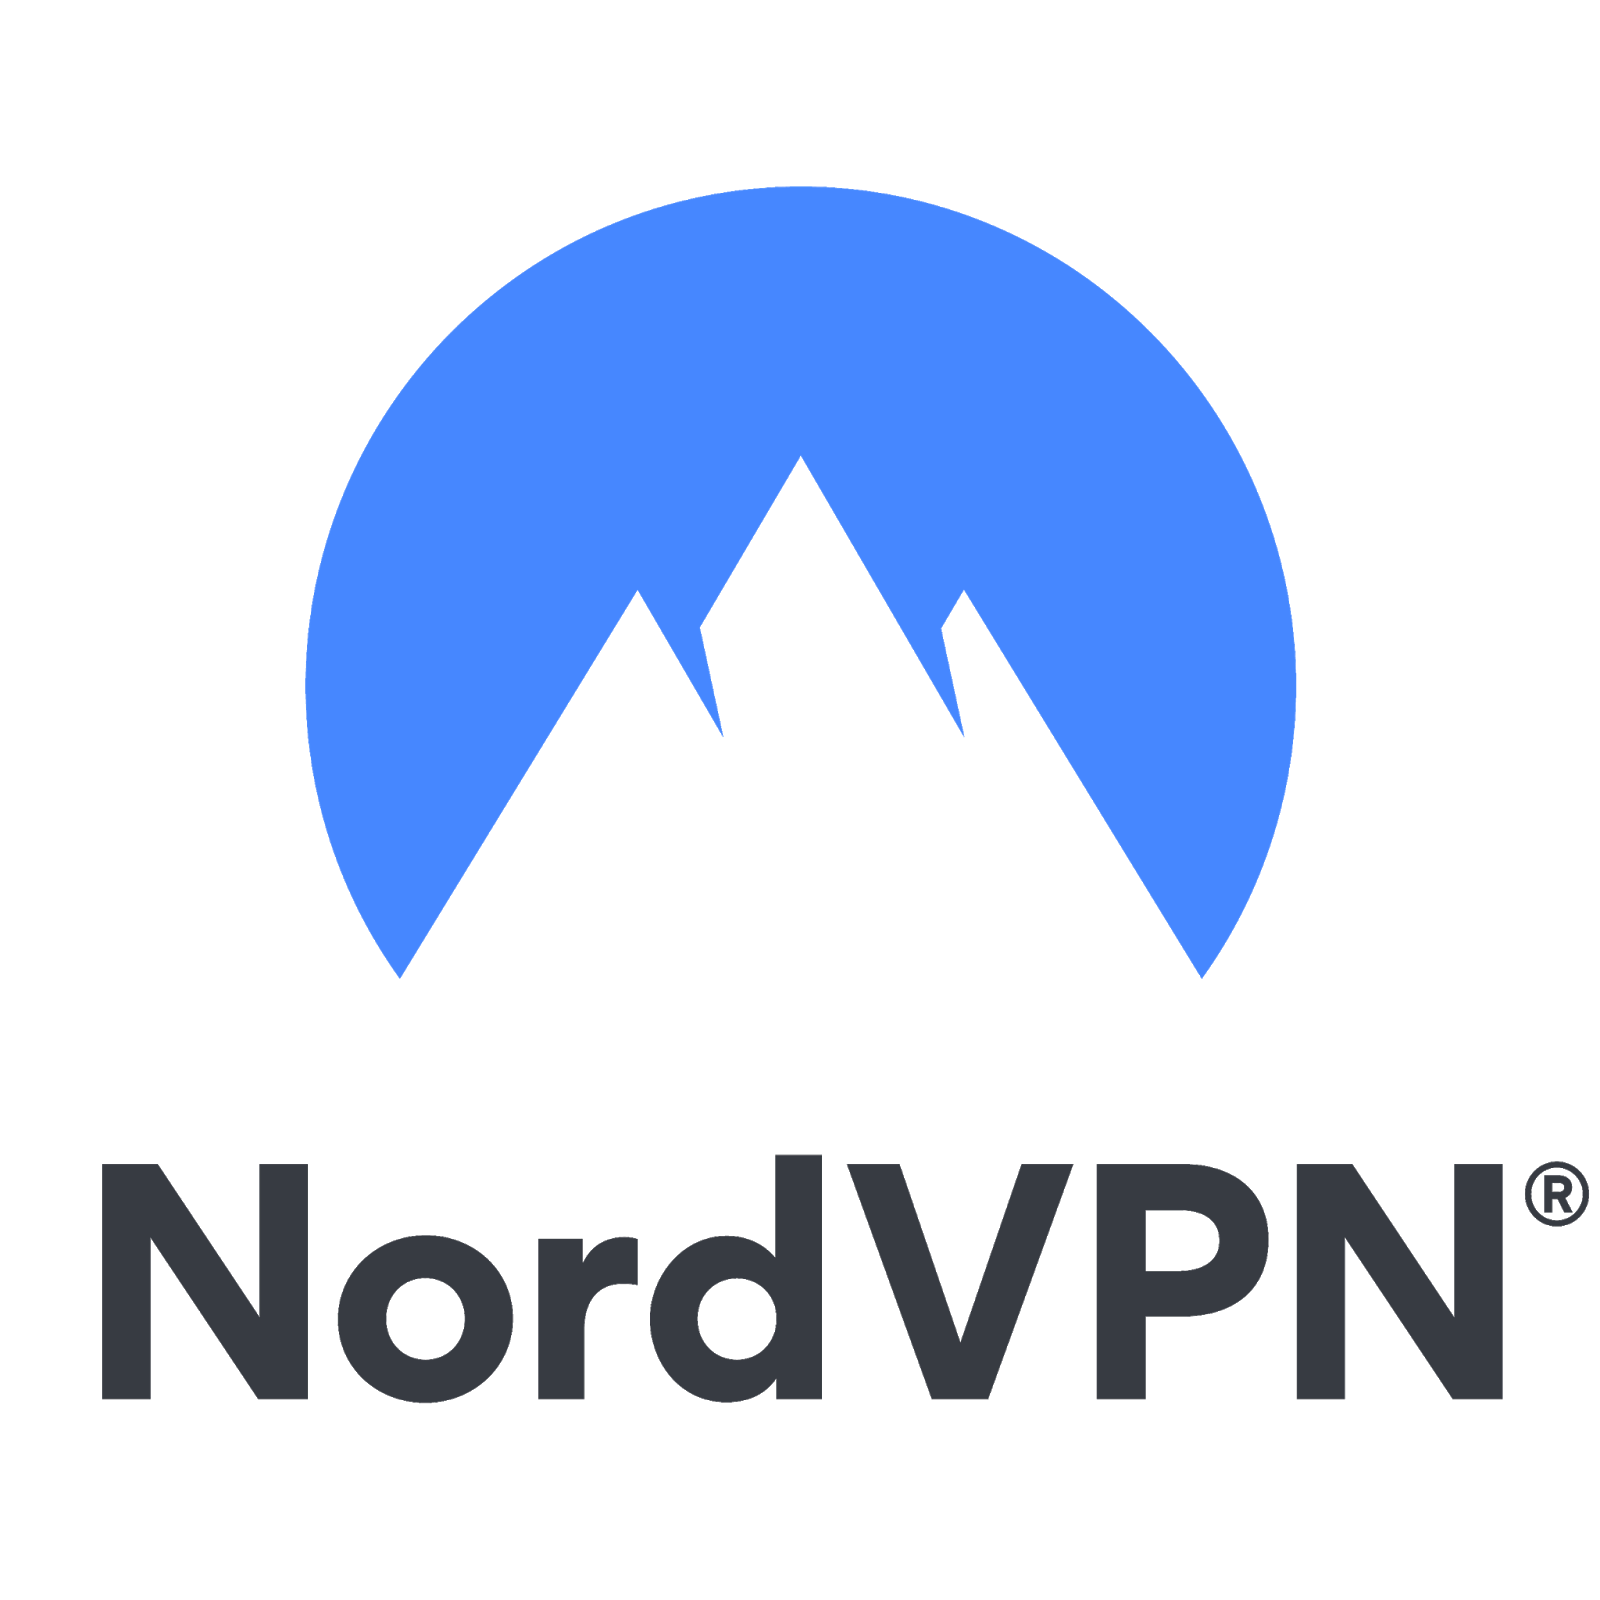 NordVPN 6.35.9.0 Crack With License Key Latest 2021 Download